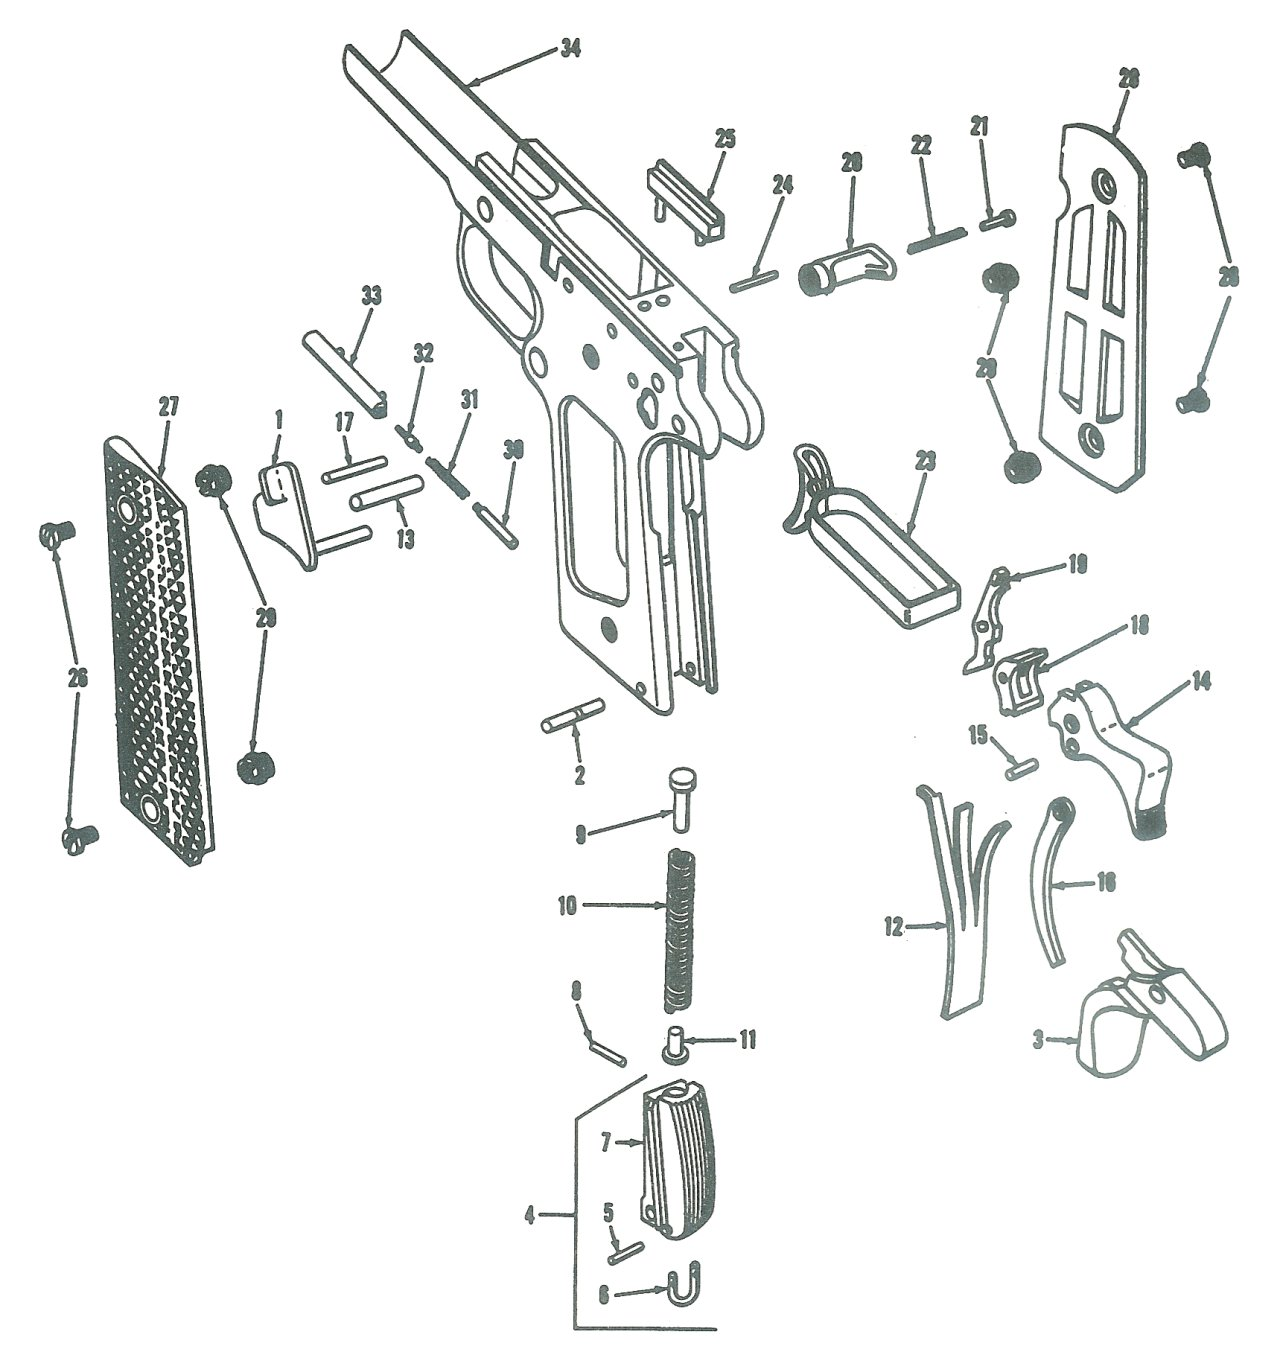 1911 Pistol Exploded View